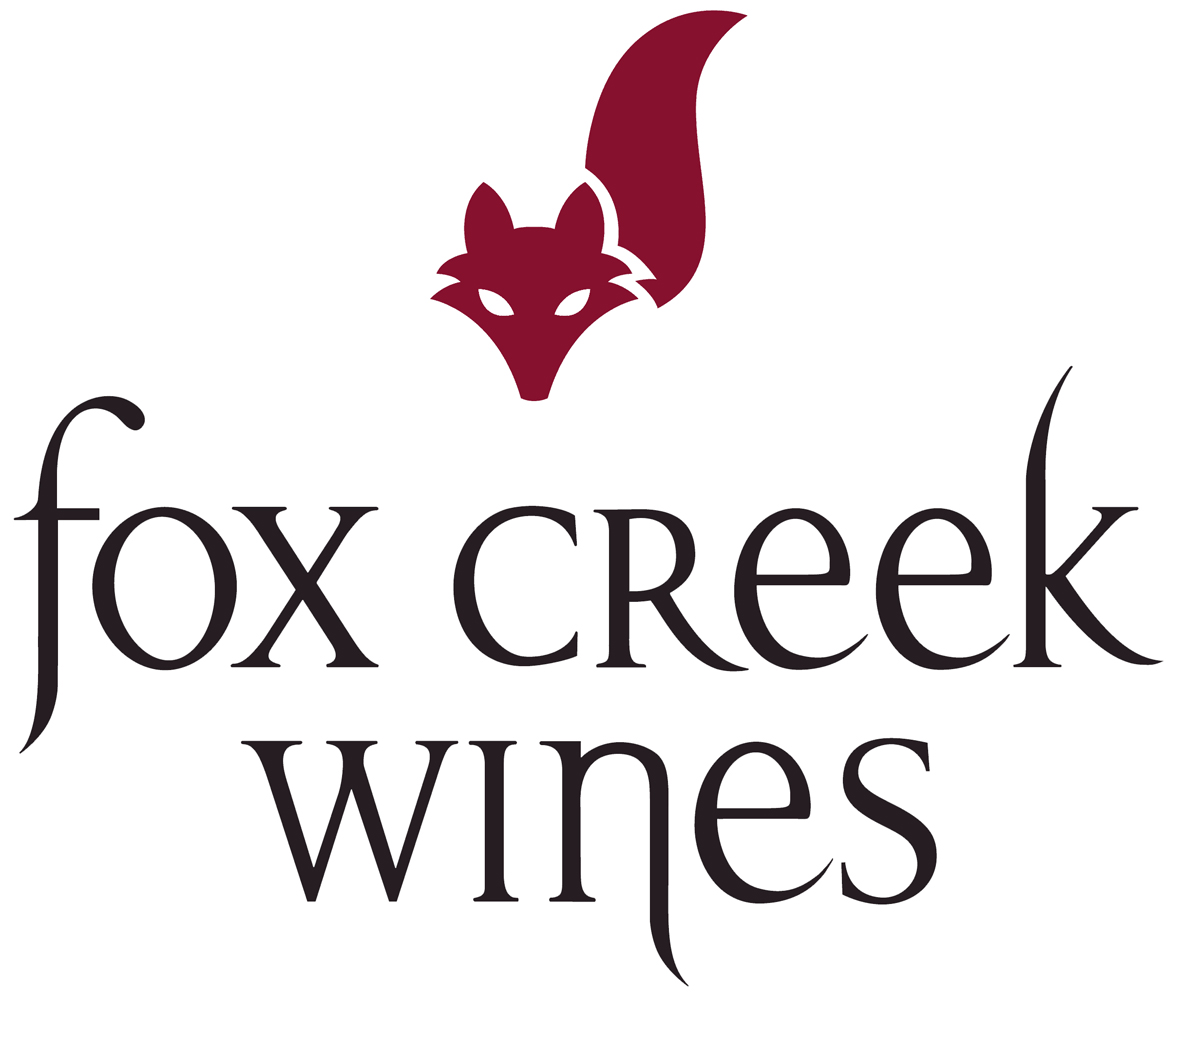 Sponsored by Fox Creek Wines